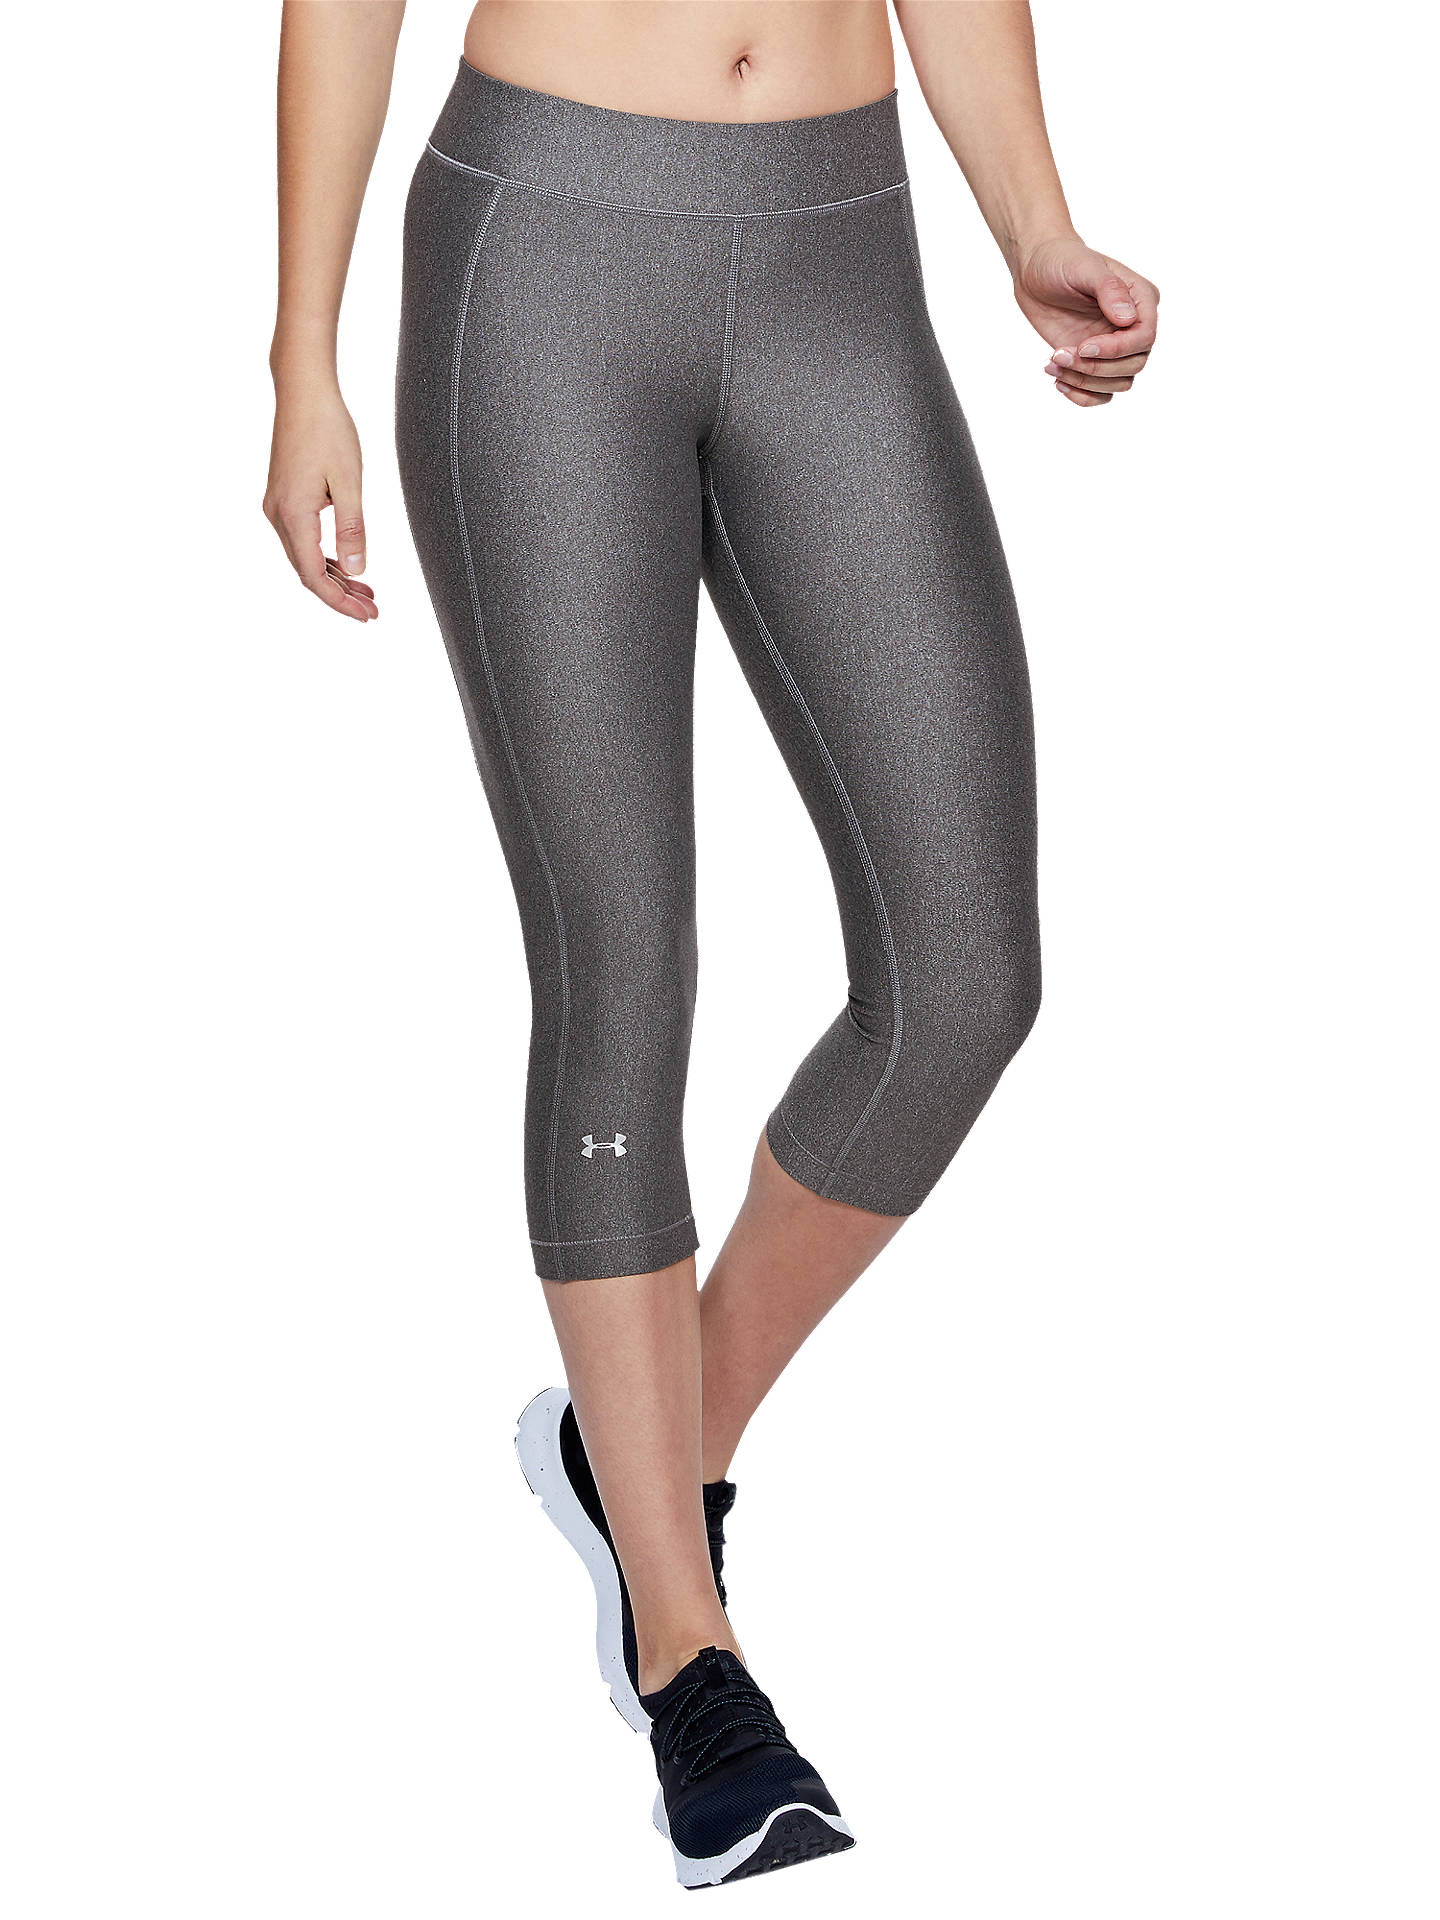 finest selection f41a0 d6b55 Buy Under Armour HeatGear Training Capris, Charcoal Light Heather, XS  Online at johnlewis.